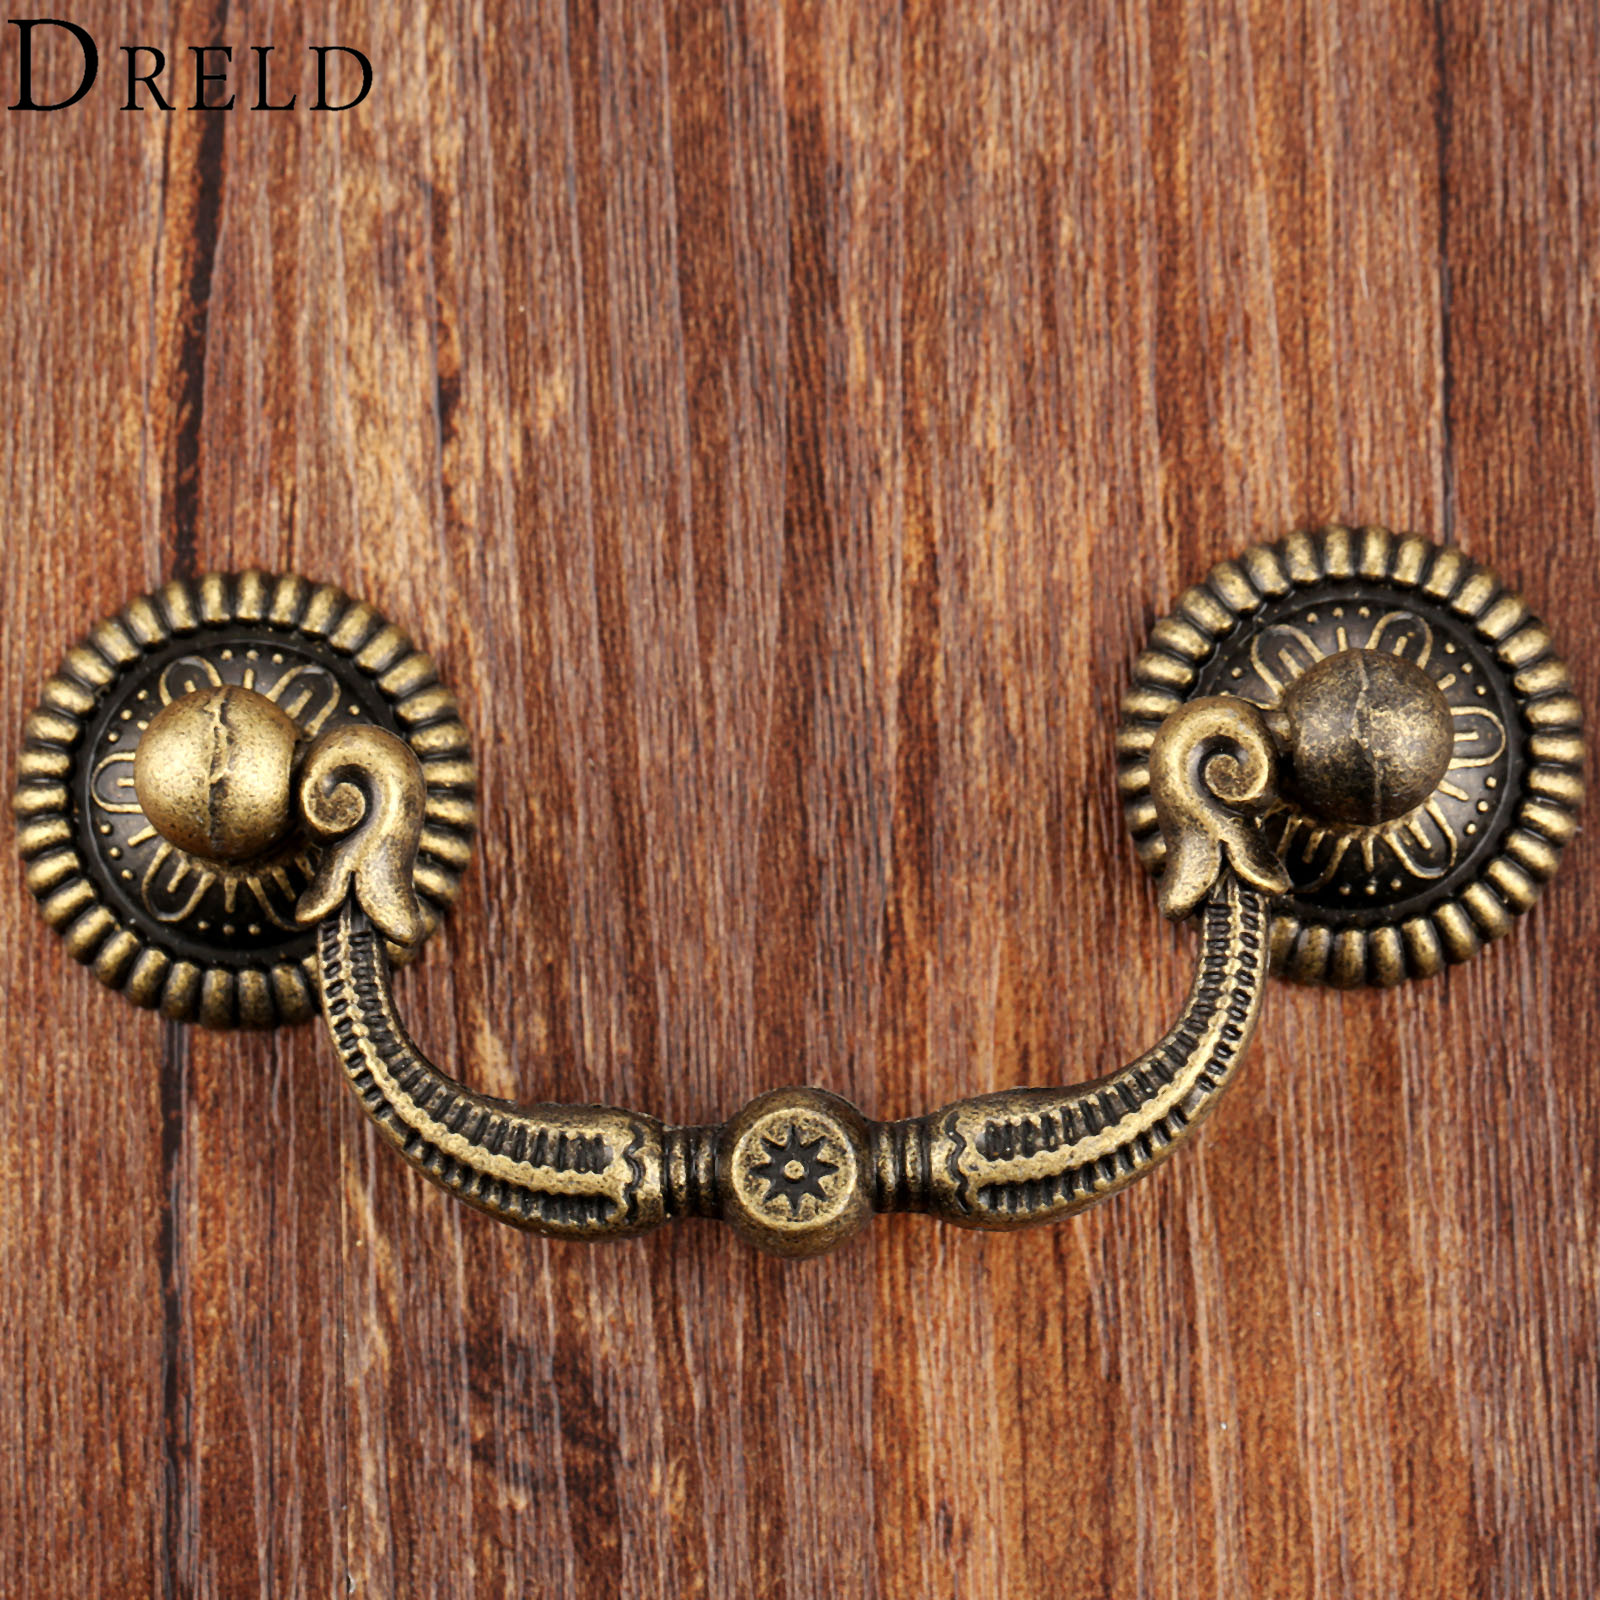 DRELD Vintage Wooden Wine Gift Box Pull Handle Kitchen Furniture Handles Closet Cabinet Knobs and Handles European Style 90 42mm in Cabinet Pulls from Home Improvement